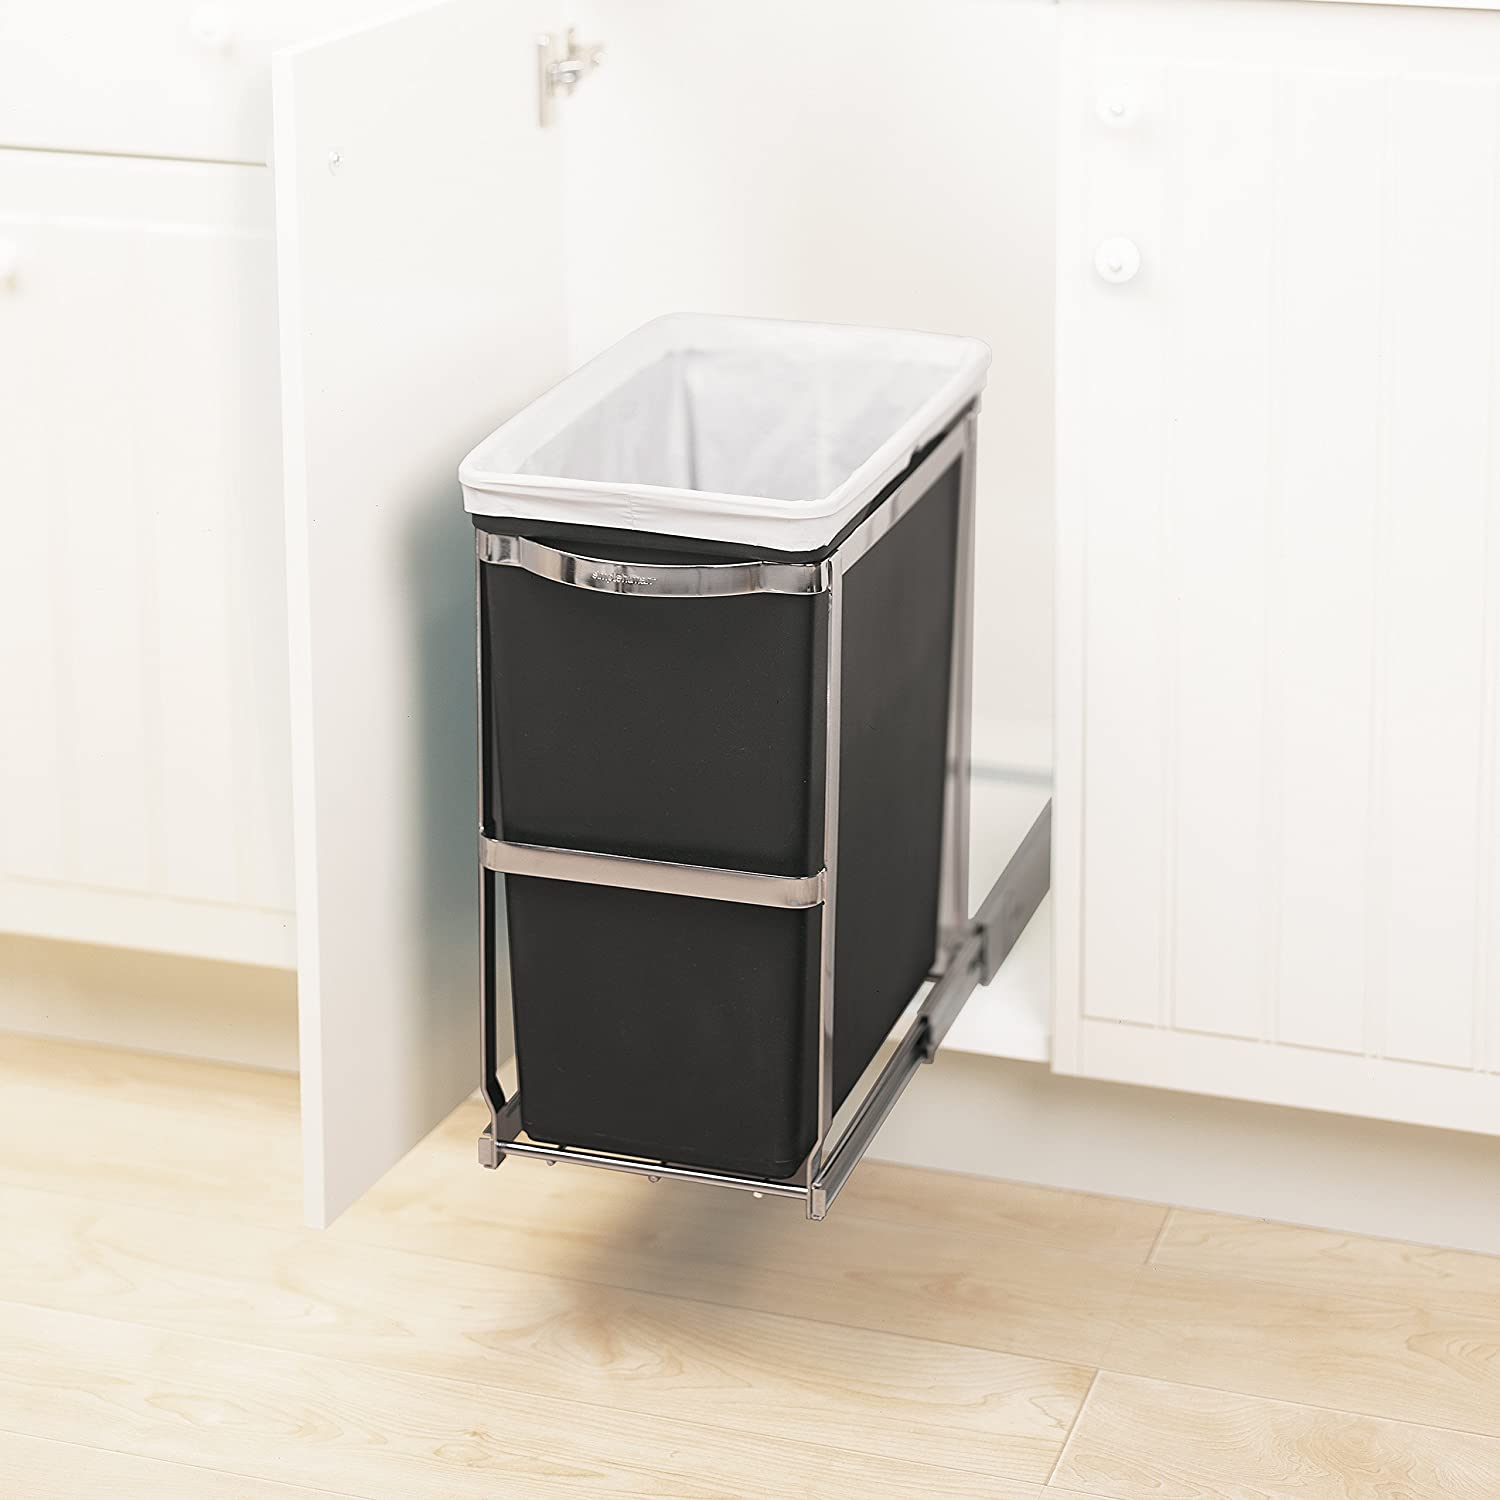 Amazon simplehuman 30 Liter 8 Gallon Under Counter Kitchen Pull